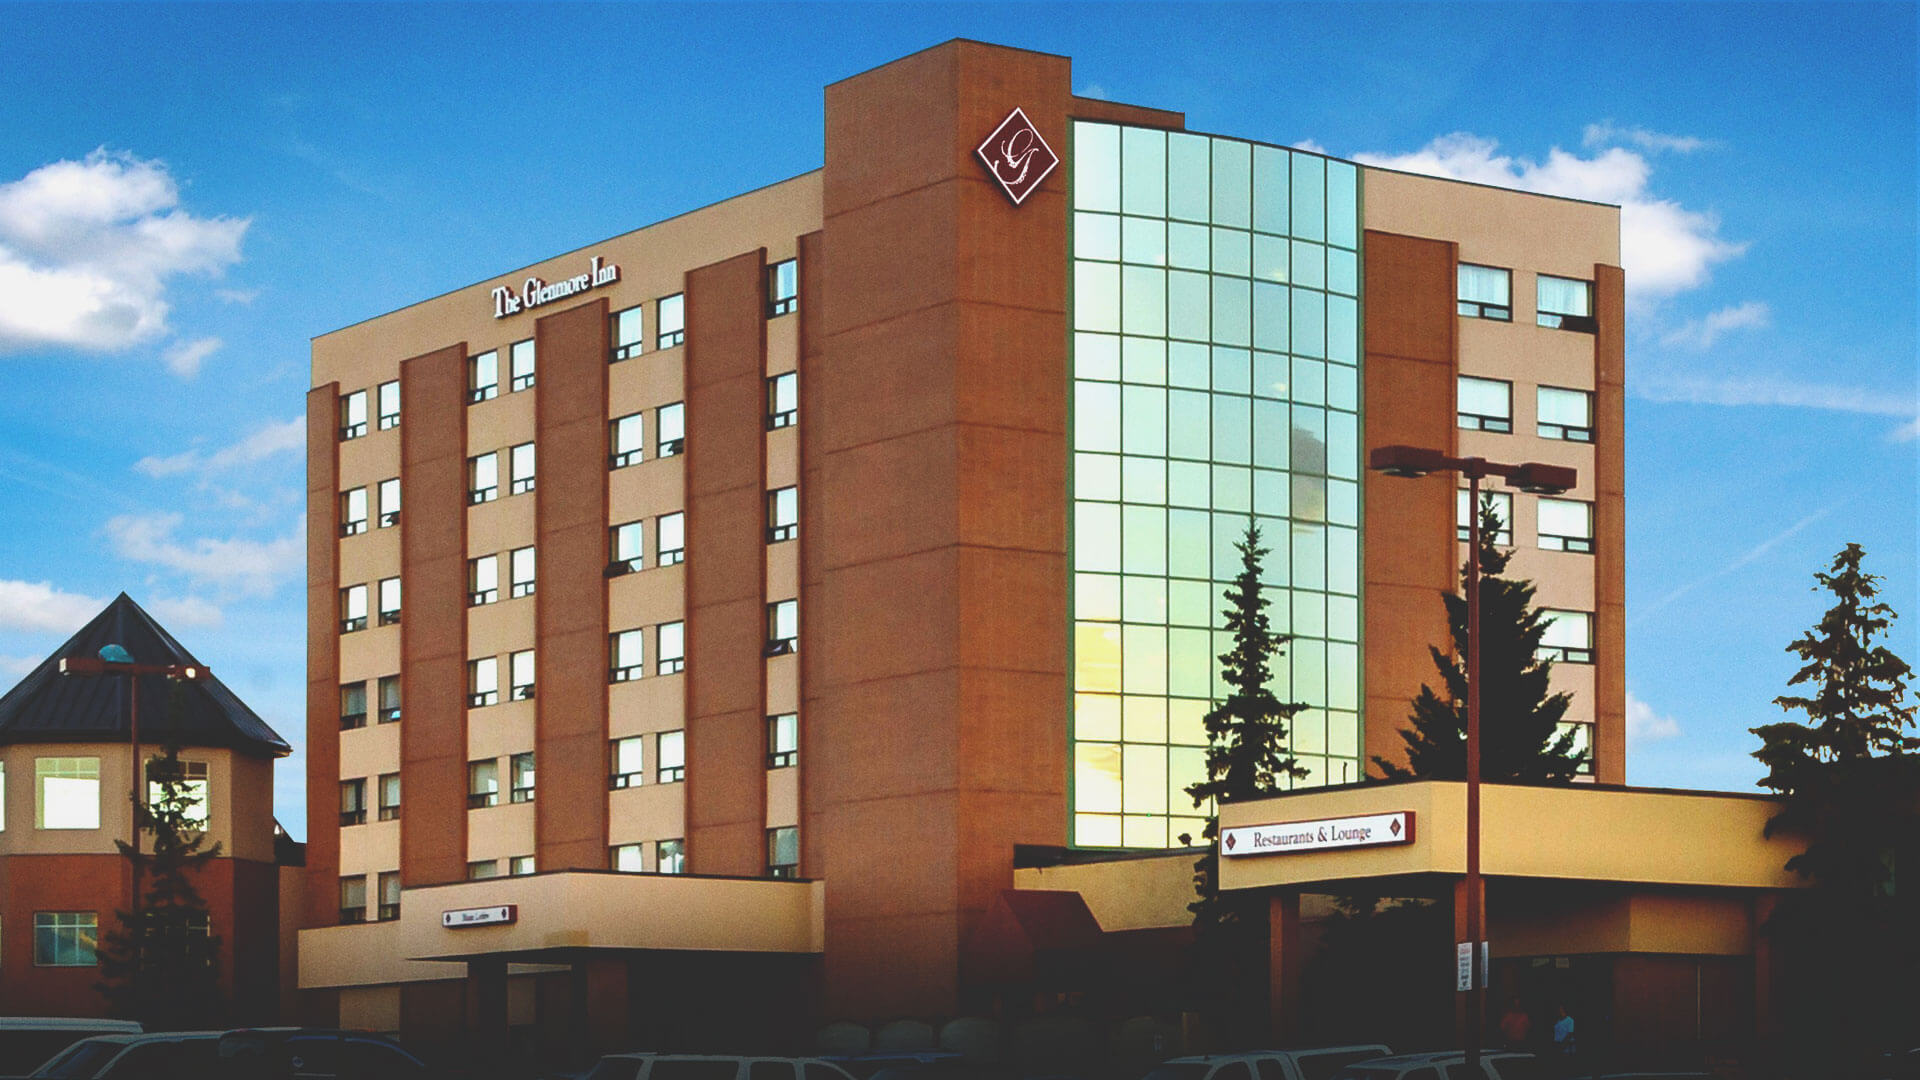 Glenmore Inn & Convention Centre